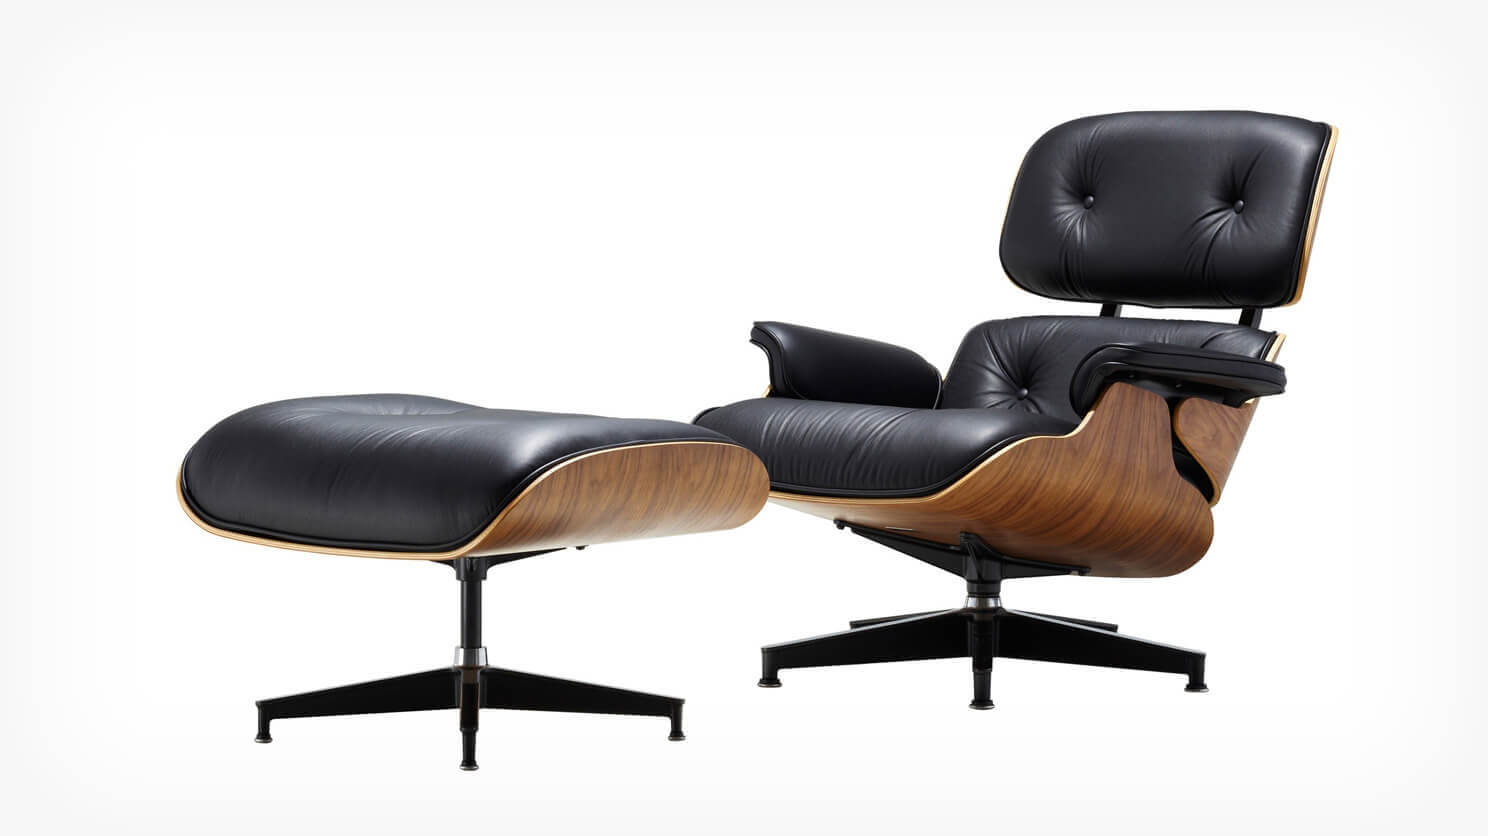 Fauteuil Repose Pied Fauteuil Inclinable Et Repose Pieds Eames